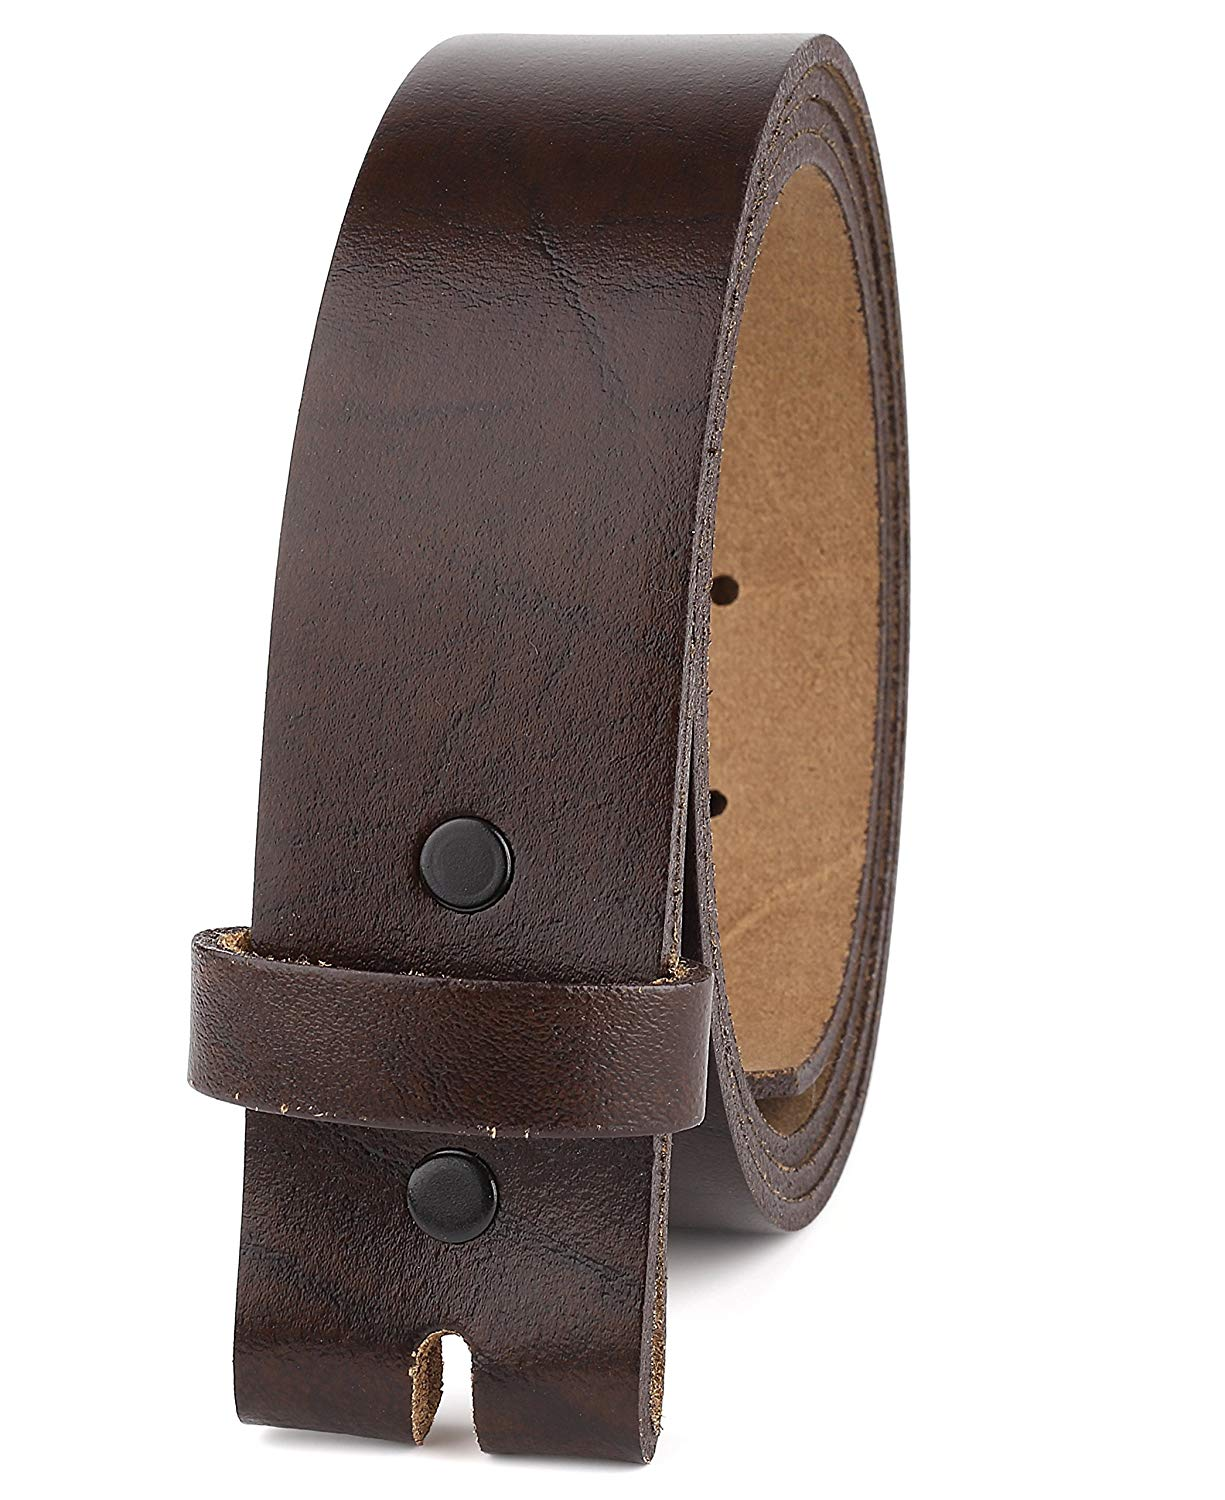 "Belt for Buckles 100% Top Grain One Piece Leather,up to Size 62, 1-1/2"" Wide, Made in USA"